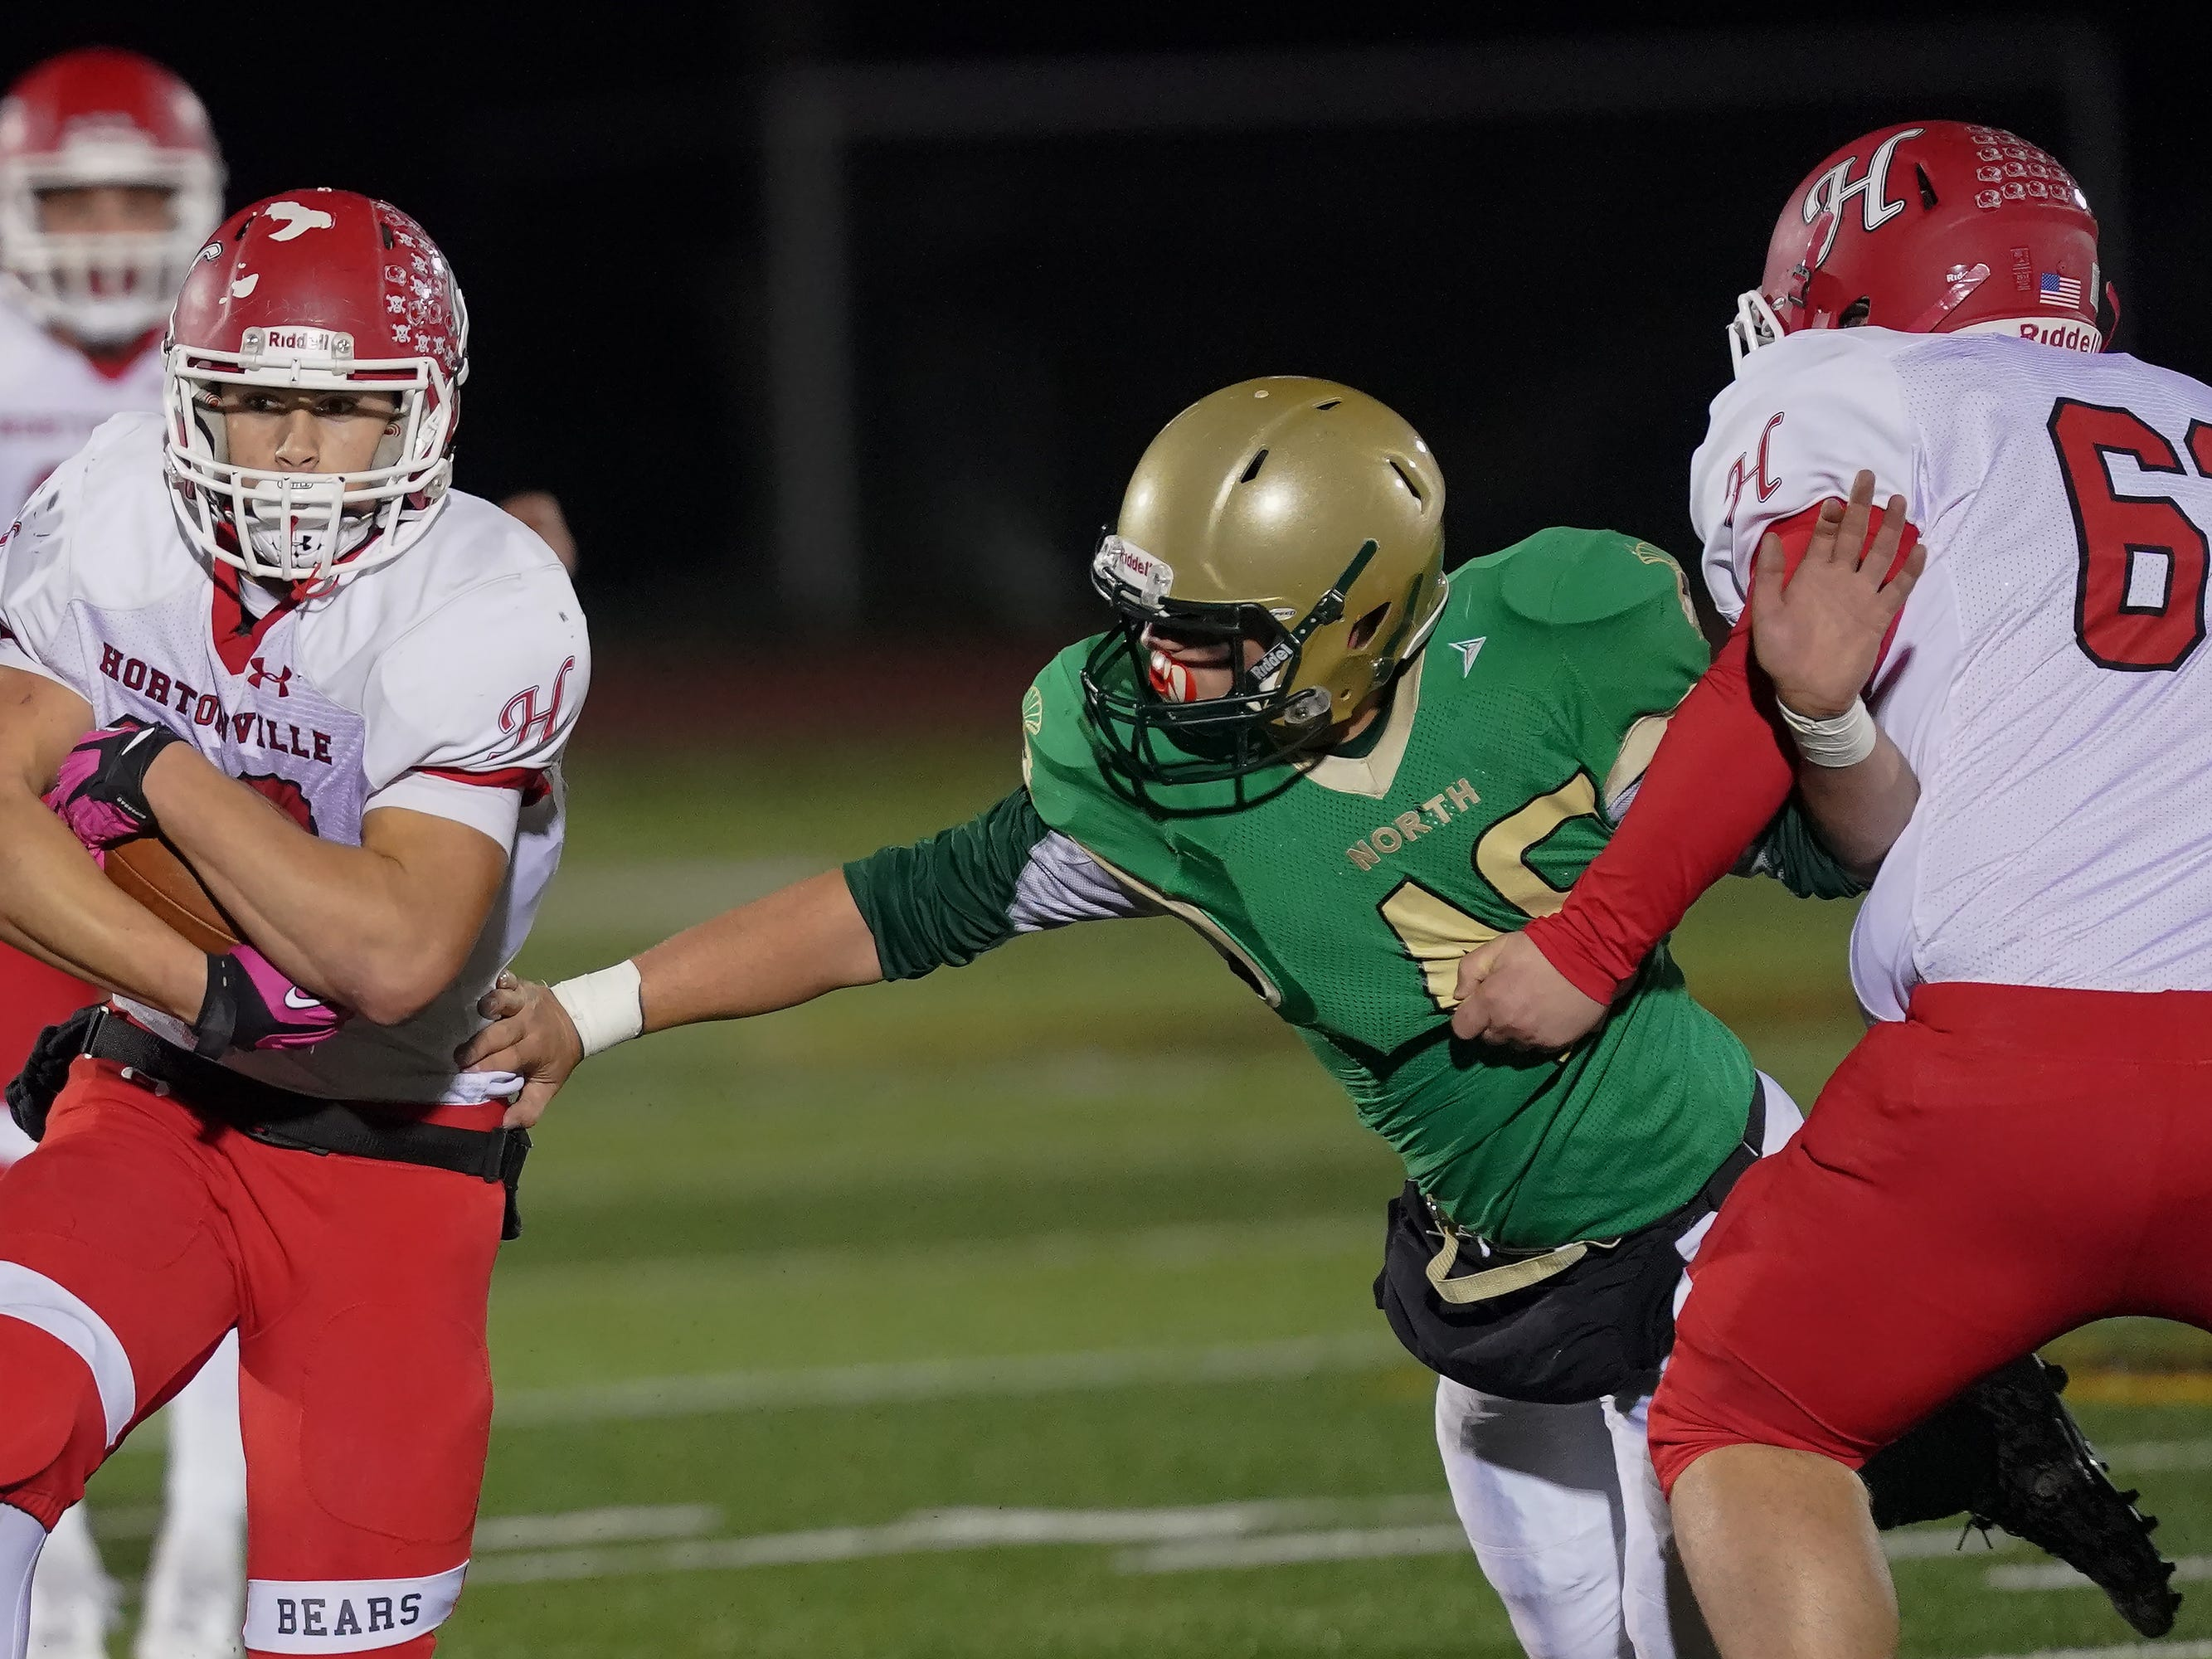 Jose Concepcion (22) of Hortonville uses both hands to protect the ball as he runs up the middle. The Oshkosh North Spartans hosted the Hortonville Polar Bears in an FVA-South conference matchup Friday evening, October 12, 2018 at J. J. Keller Field at Titan Stadium.